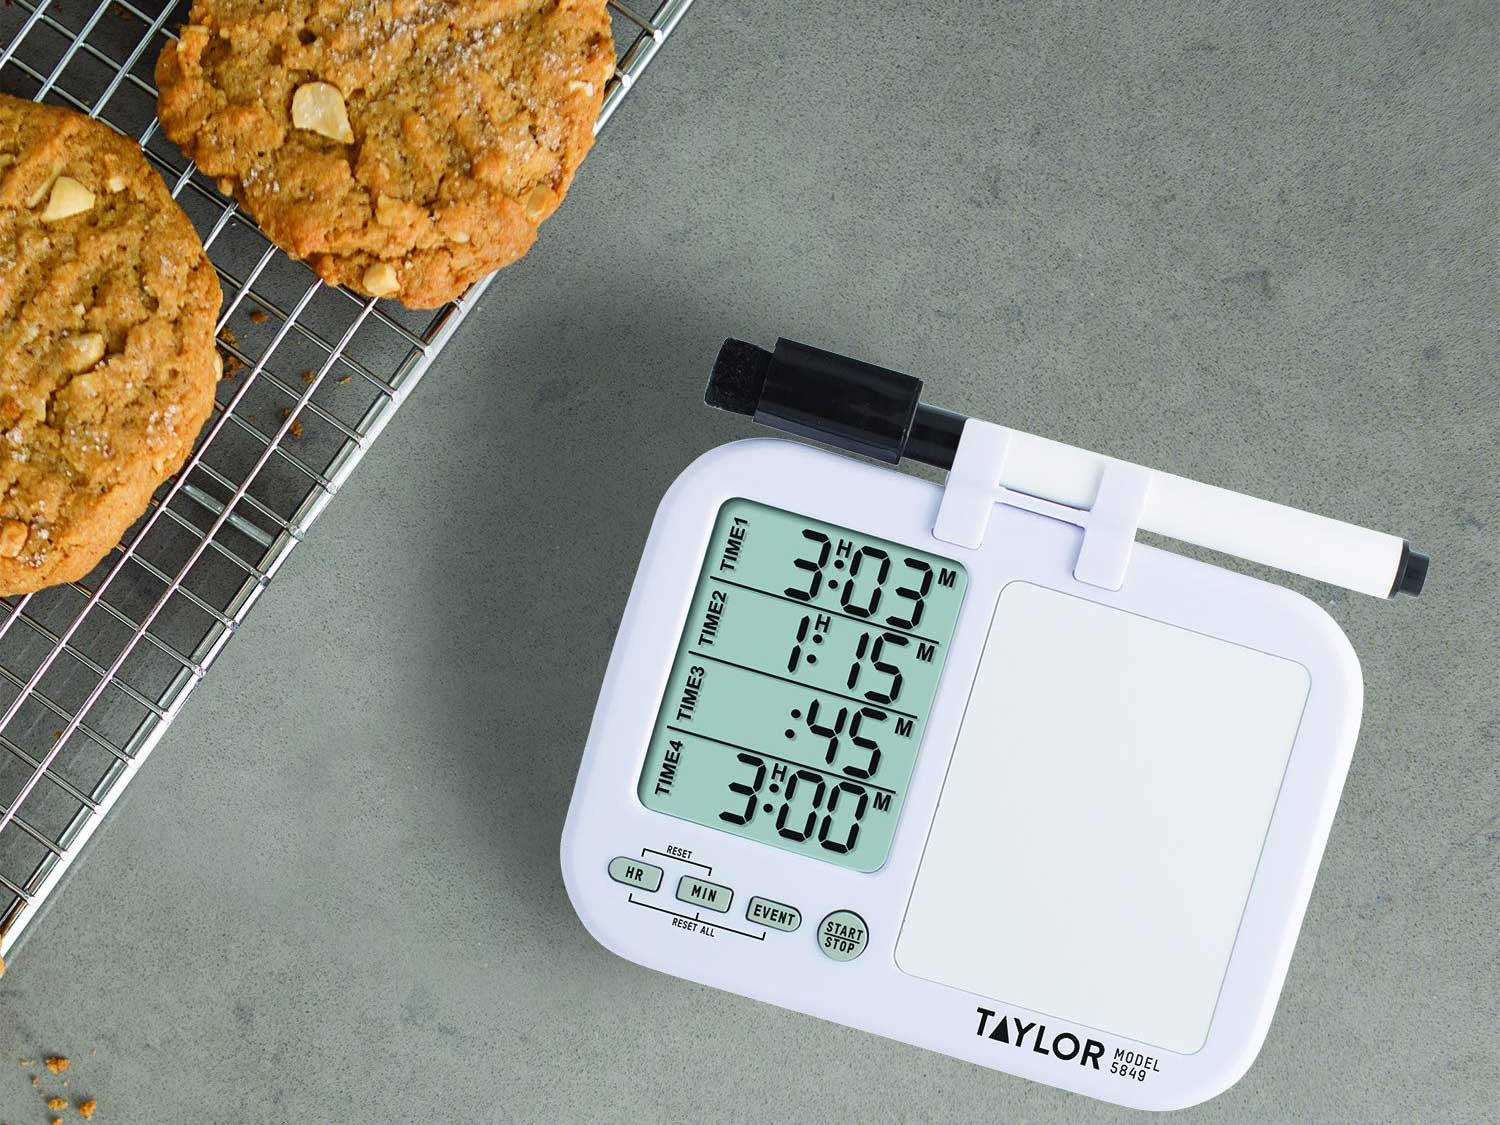 Kitchen timer and cookies on cooling rack.